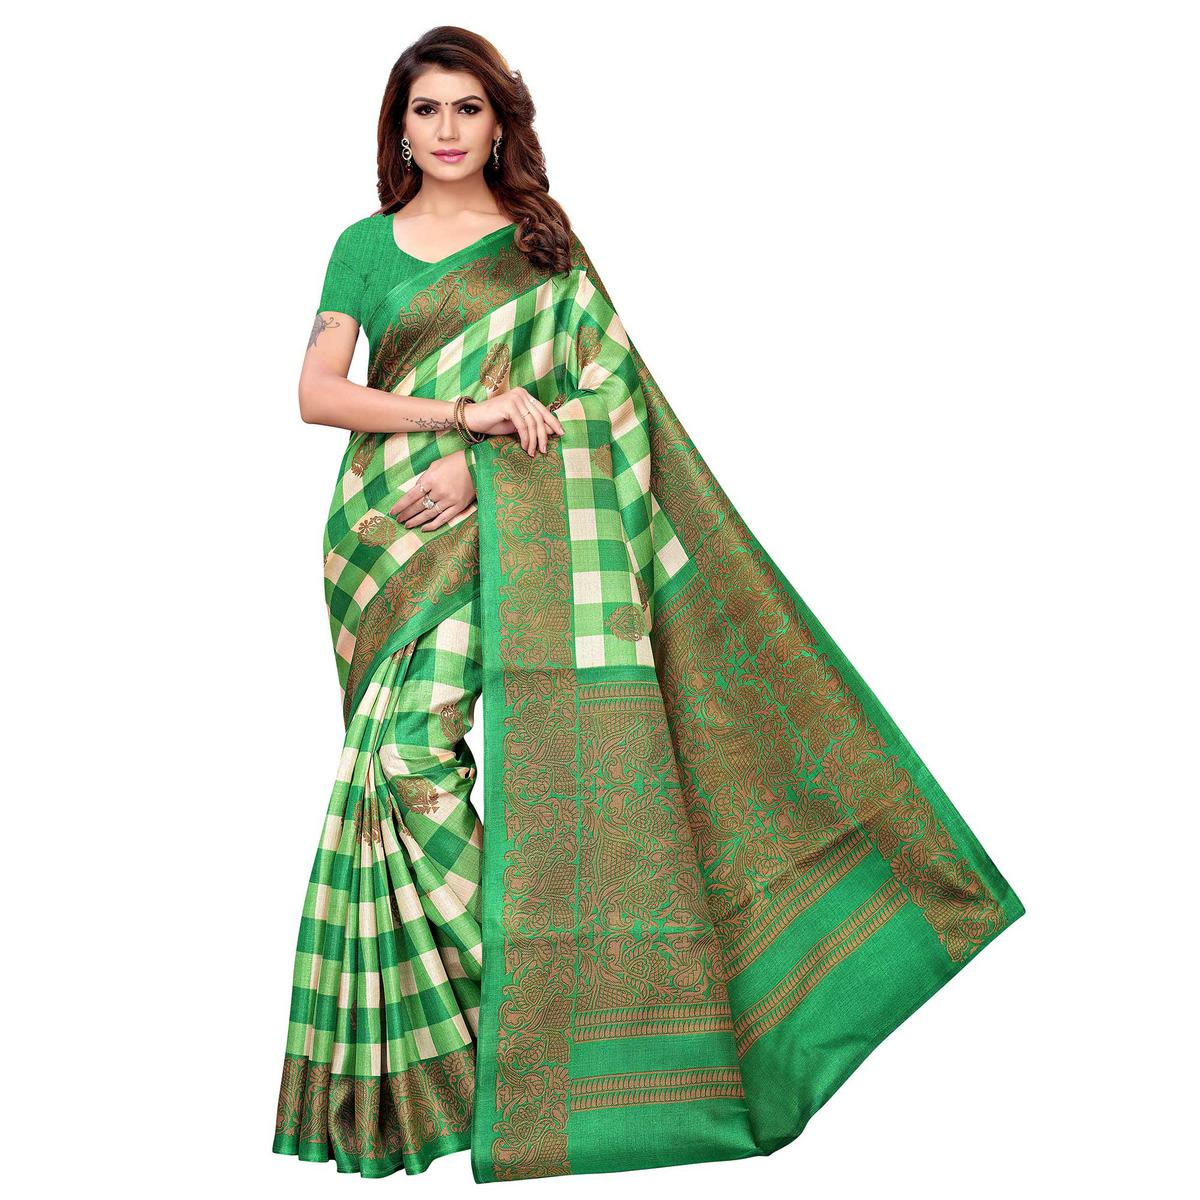 Beautiful Green Colored Casual Printed Khadi Silk Saree